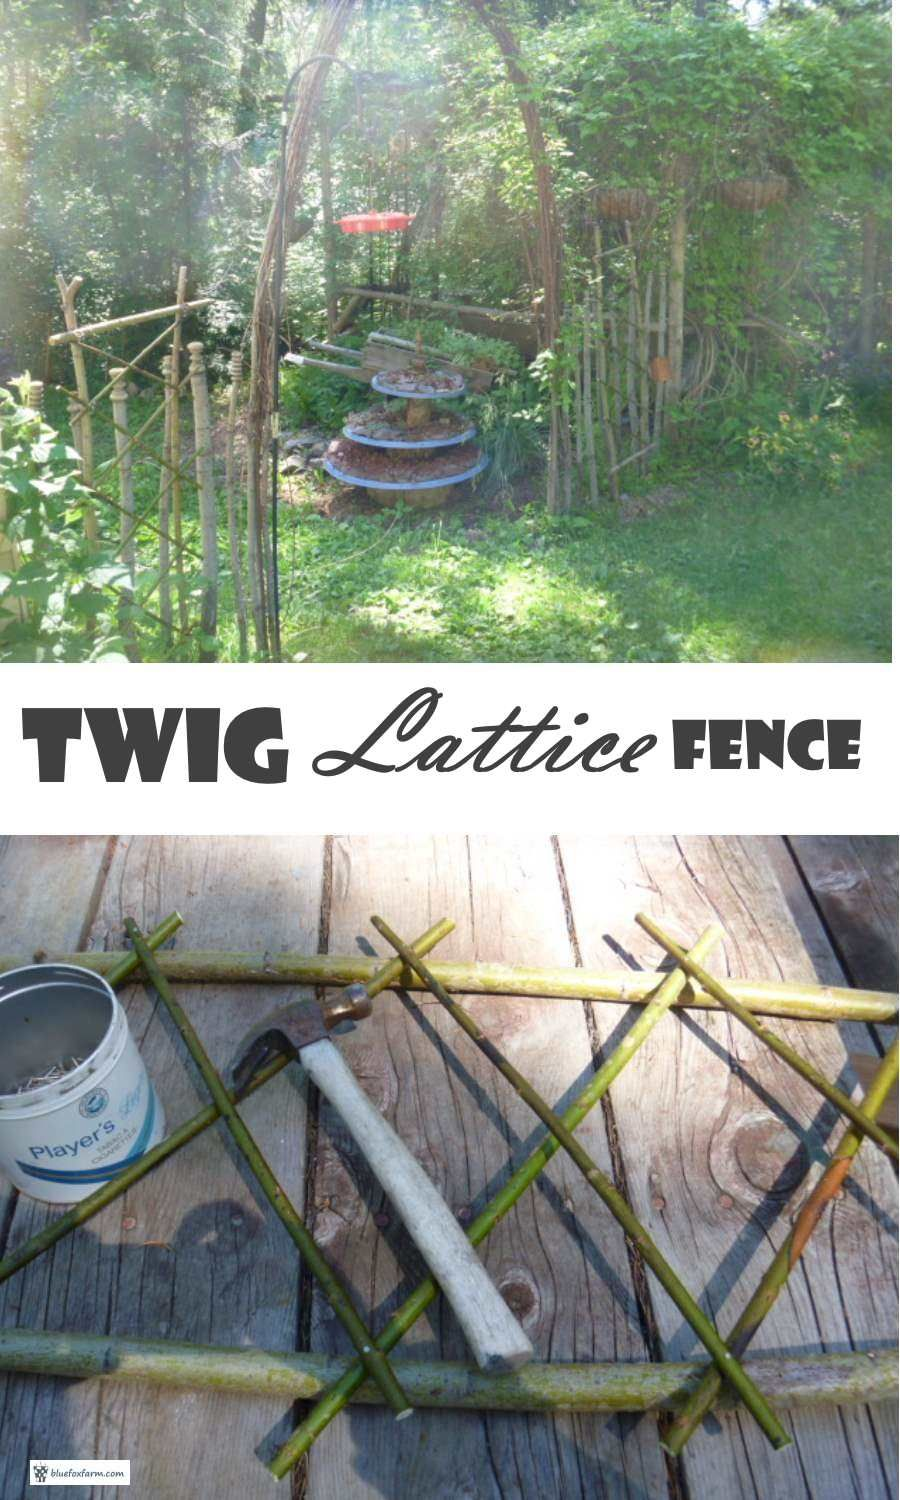 Twig Lattice Fence; unusual ways to build distinctive garden fences is part of Upcycled garden Art - Twig Lattice Fence is a distinctive and deceptively simple technique for building a unique rustic fence; with some wire and twigs, you can make your very own unusual garden fence